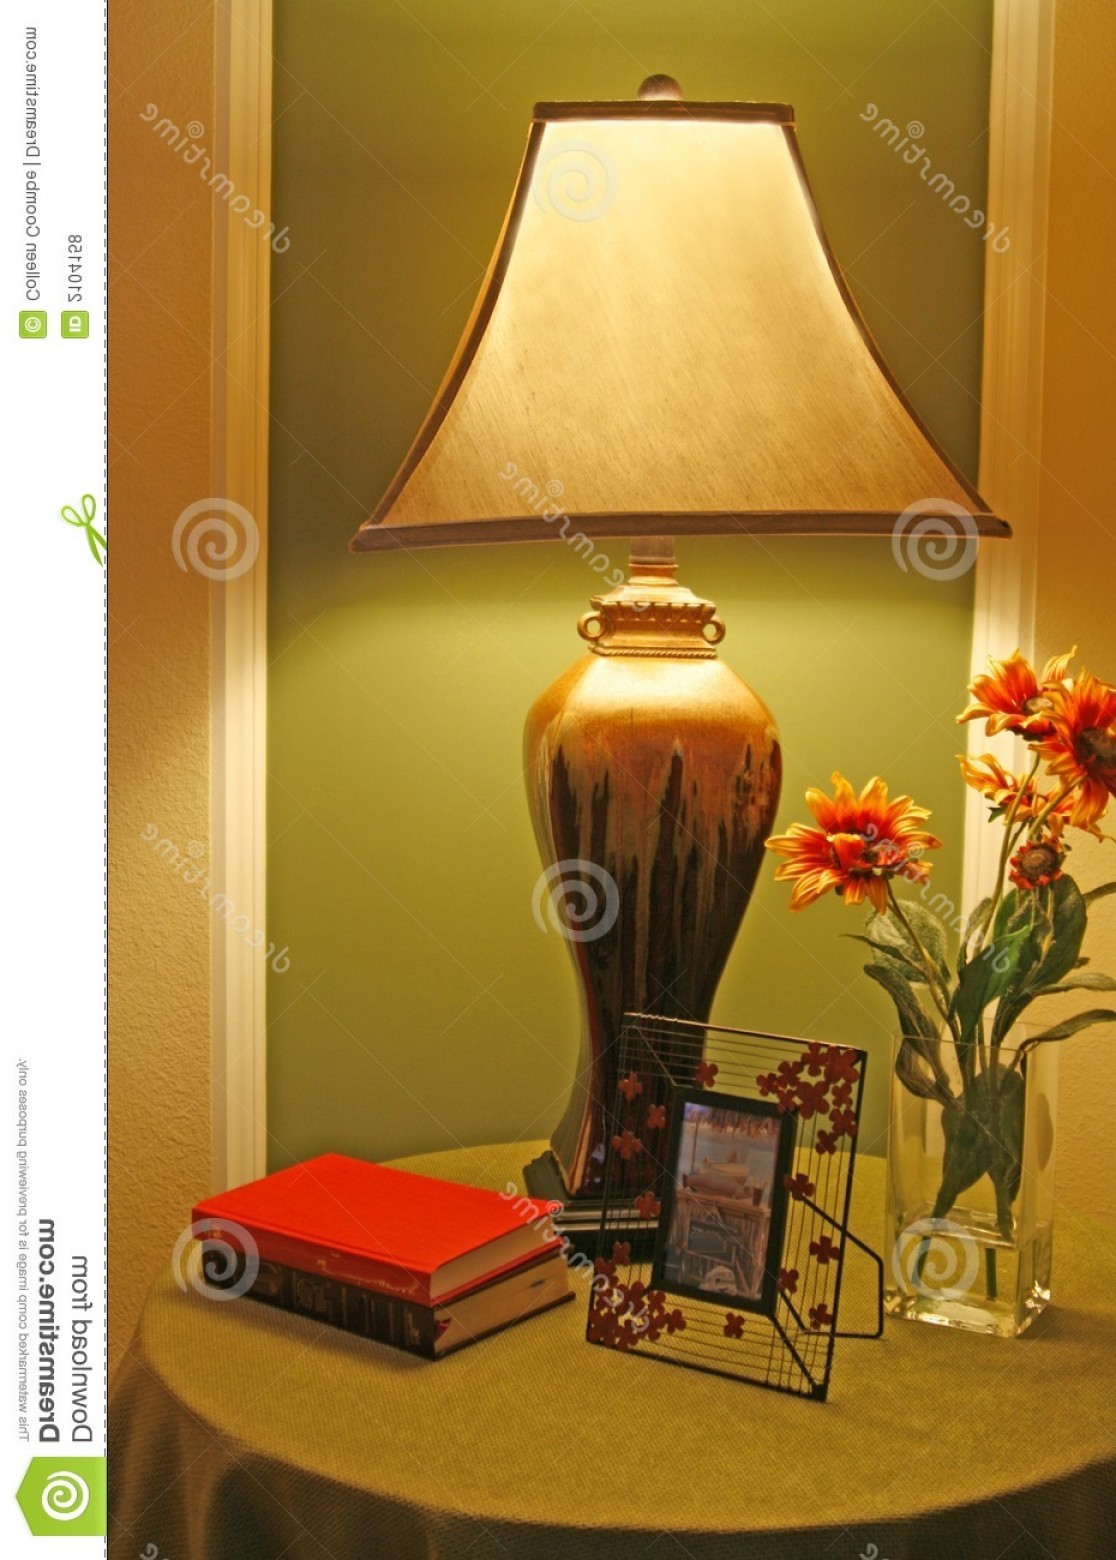 D Night Stanf Vector Graphic: Royalty Free Stock Photos Unusual Lamp Night Stand Image